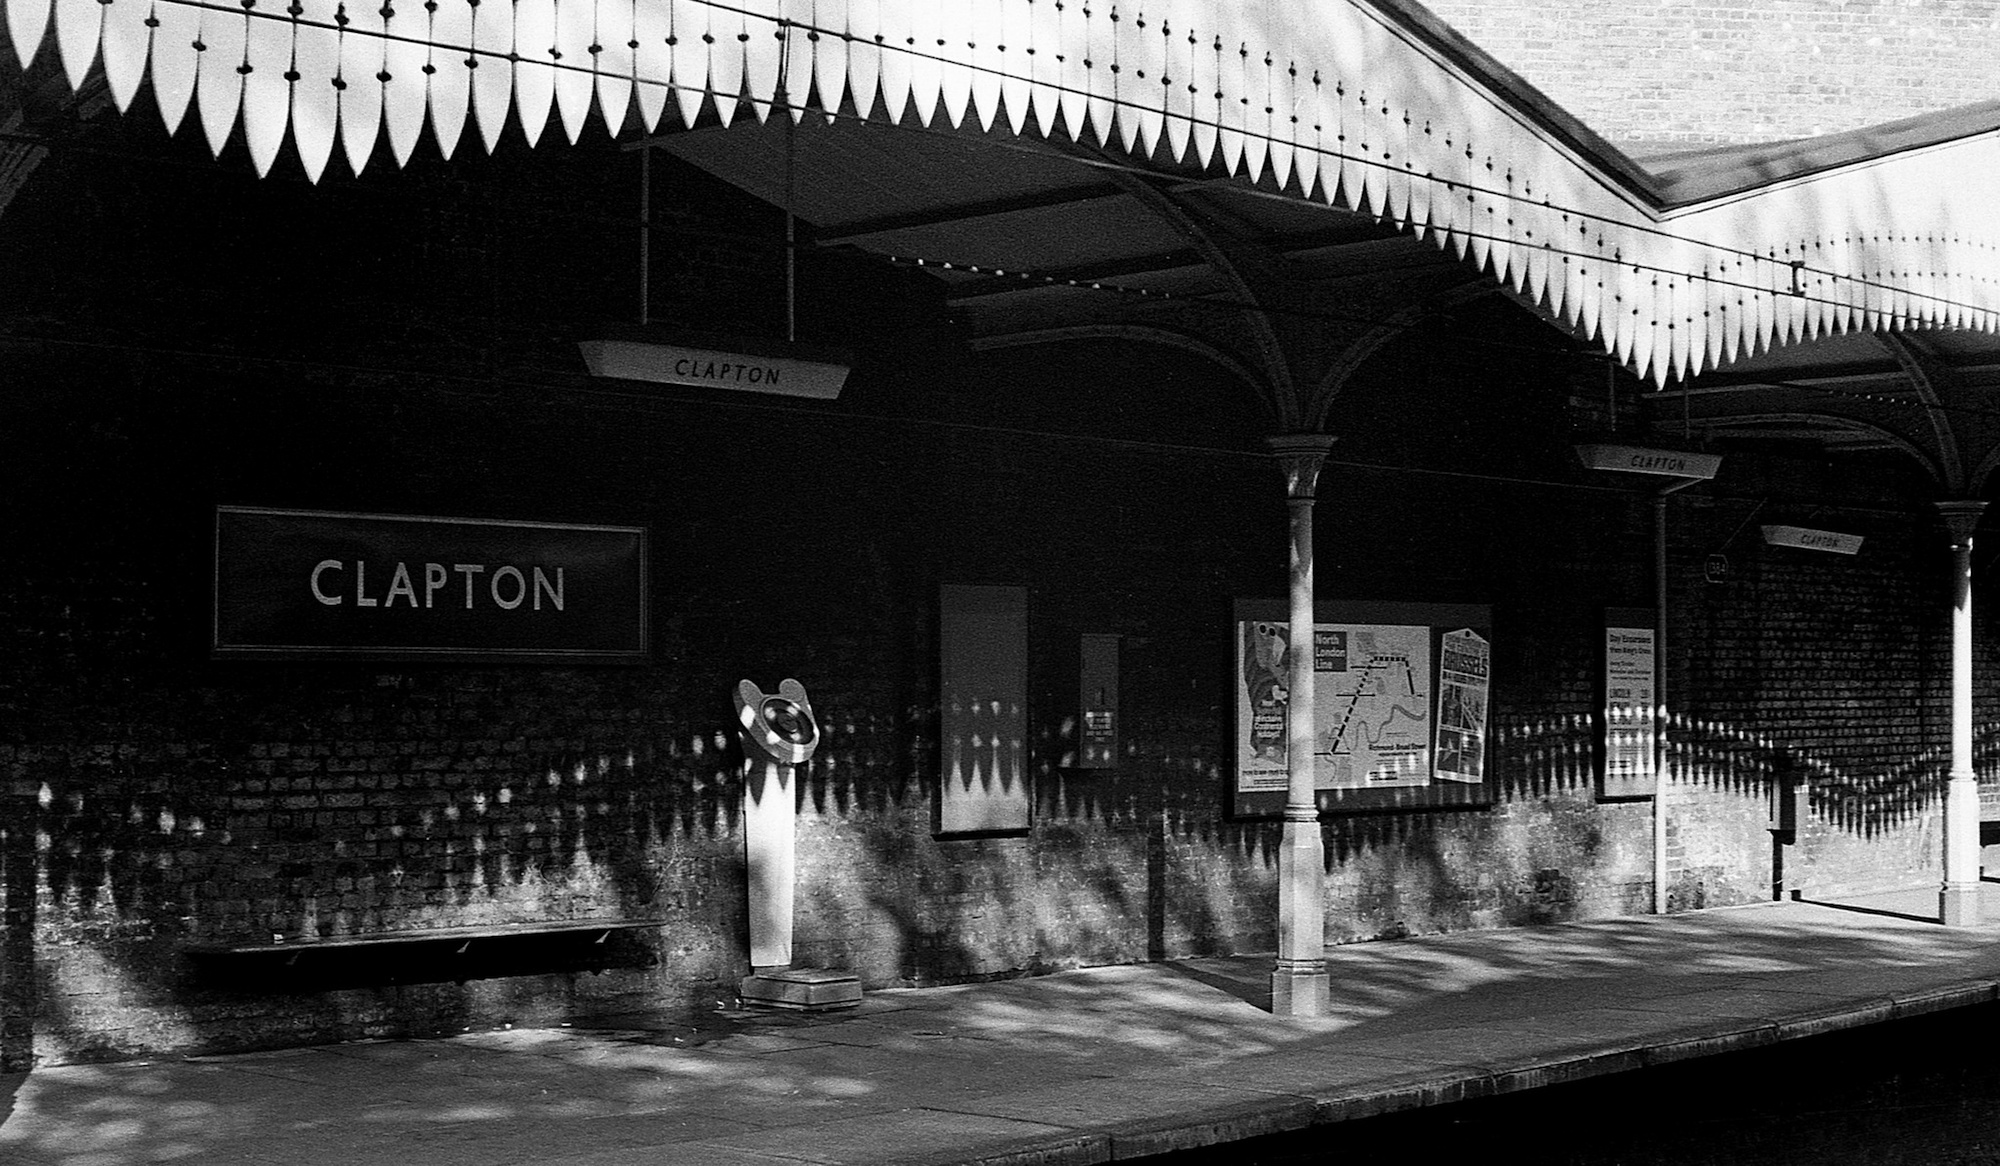 Clapton Station, Hackney, London 1967.